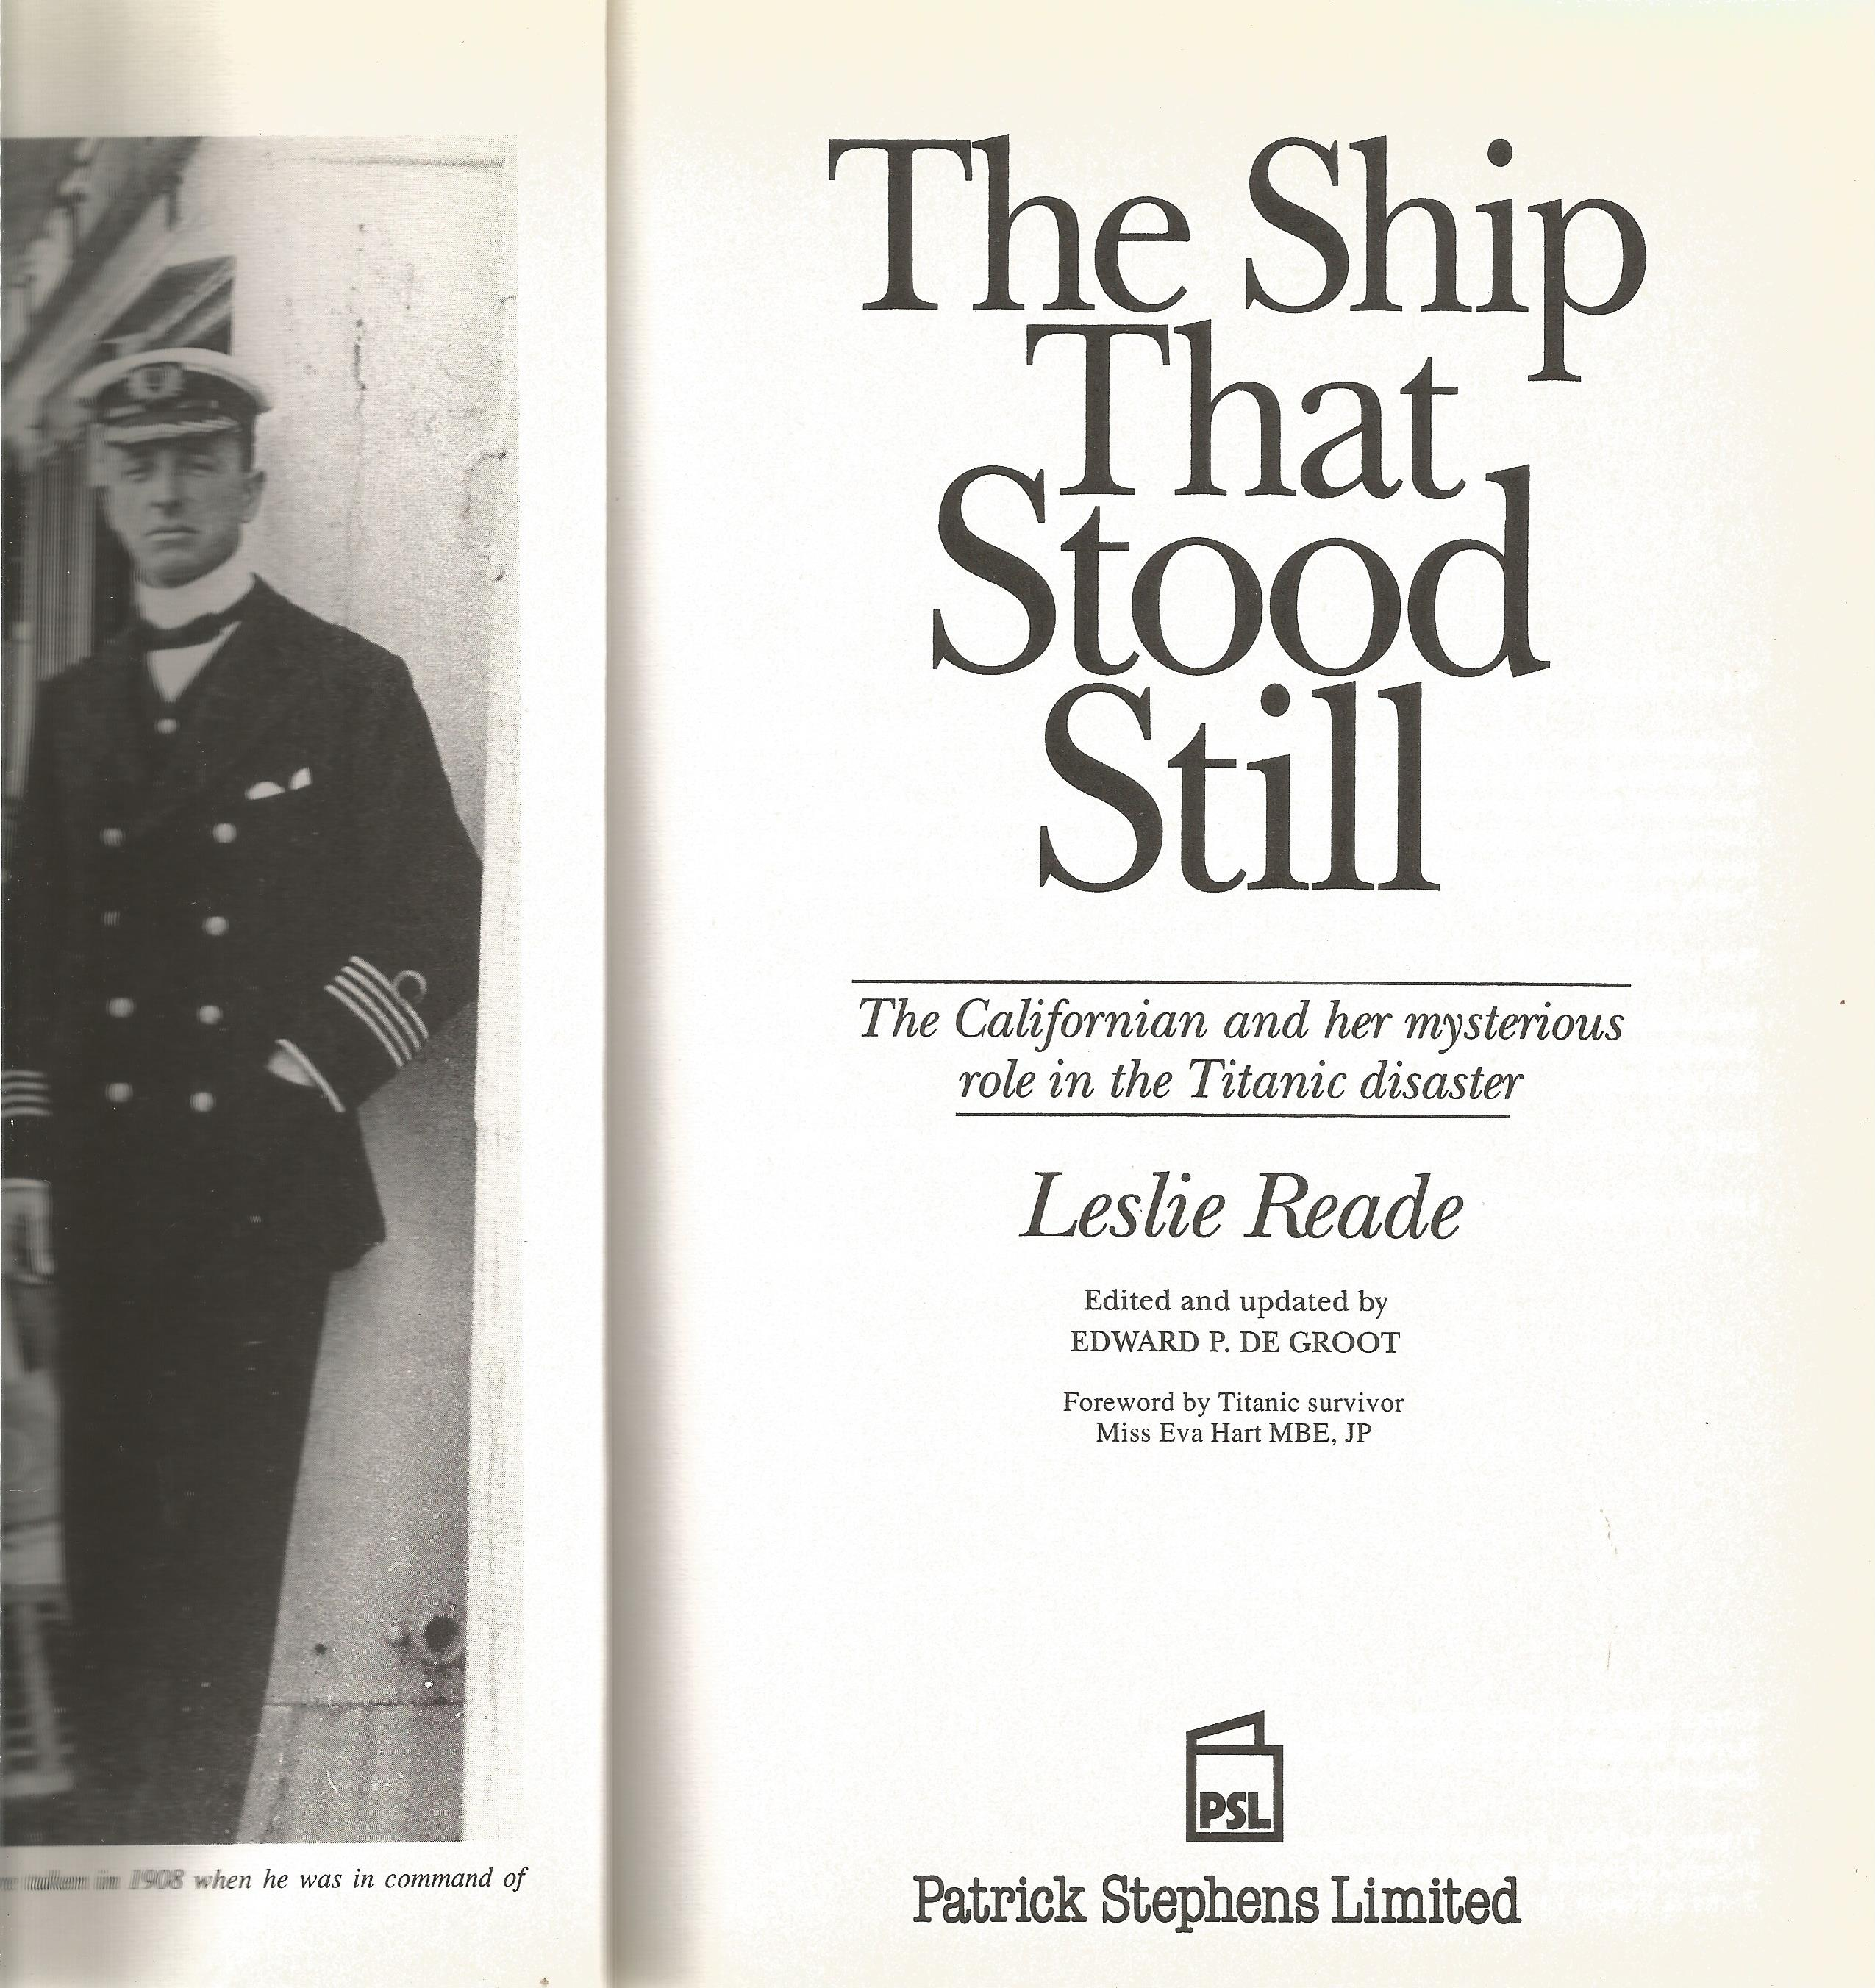 Titanic The Ship that Stood Still hardback unsigned book by Leslie Reade. With duct jacket very good - Image 2 of 2